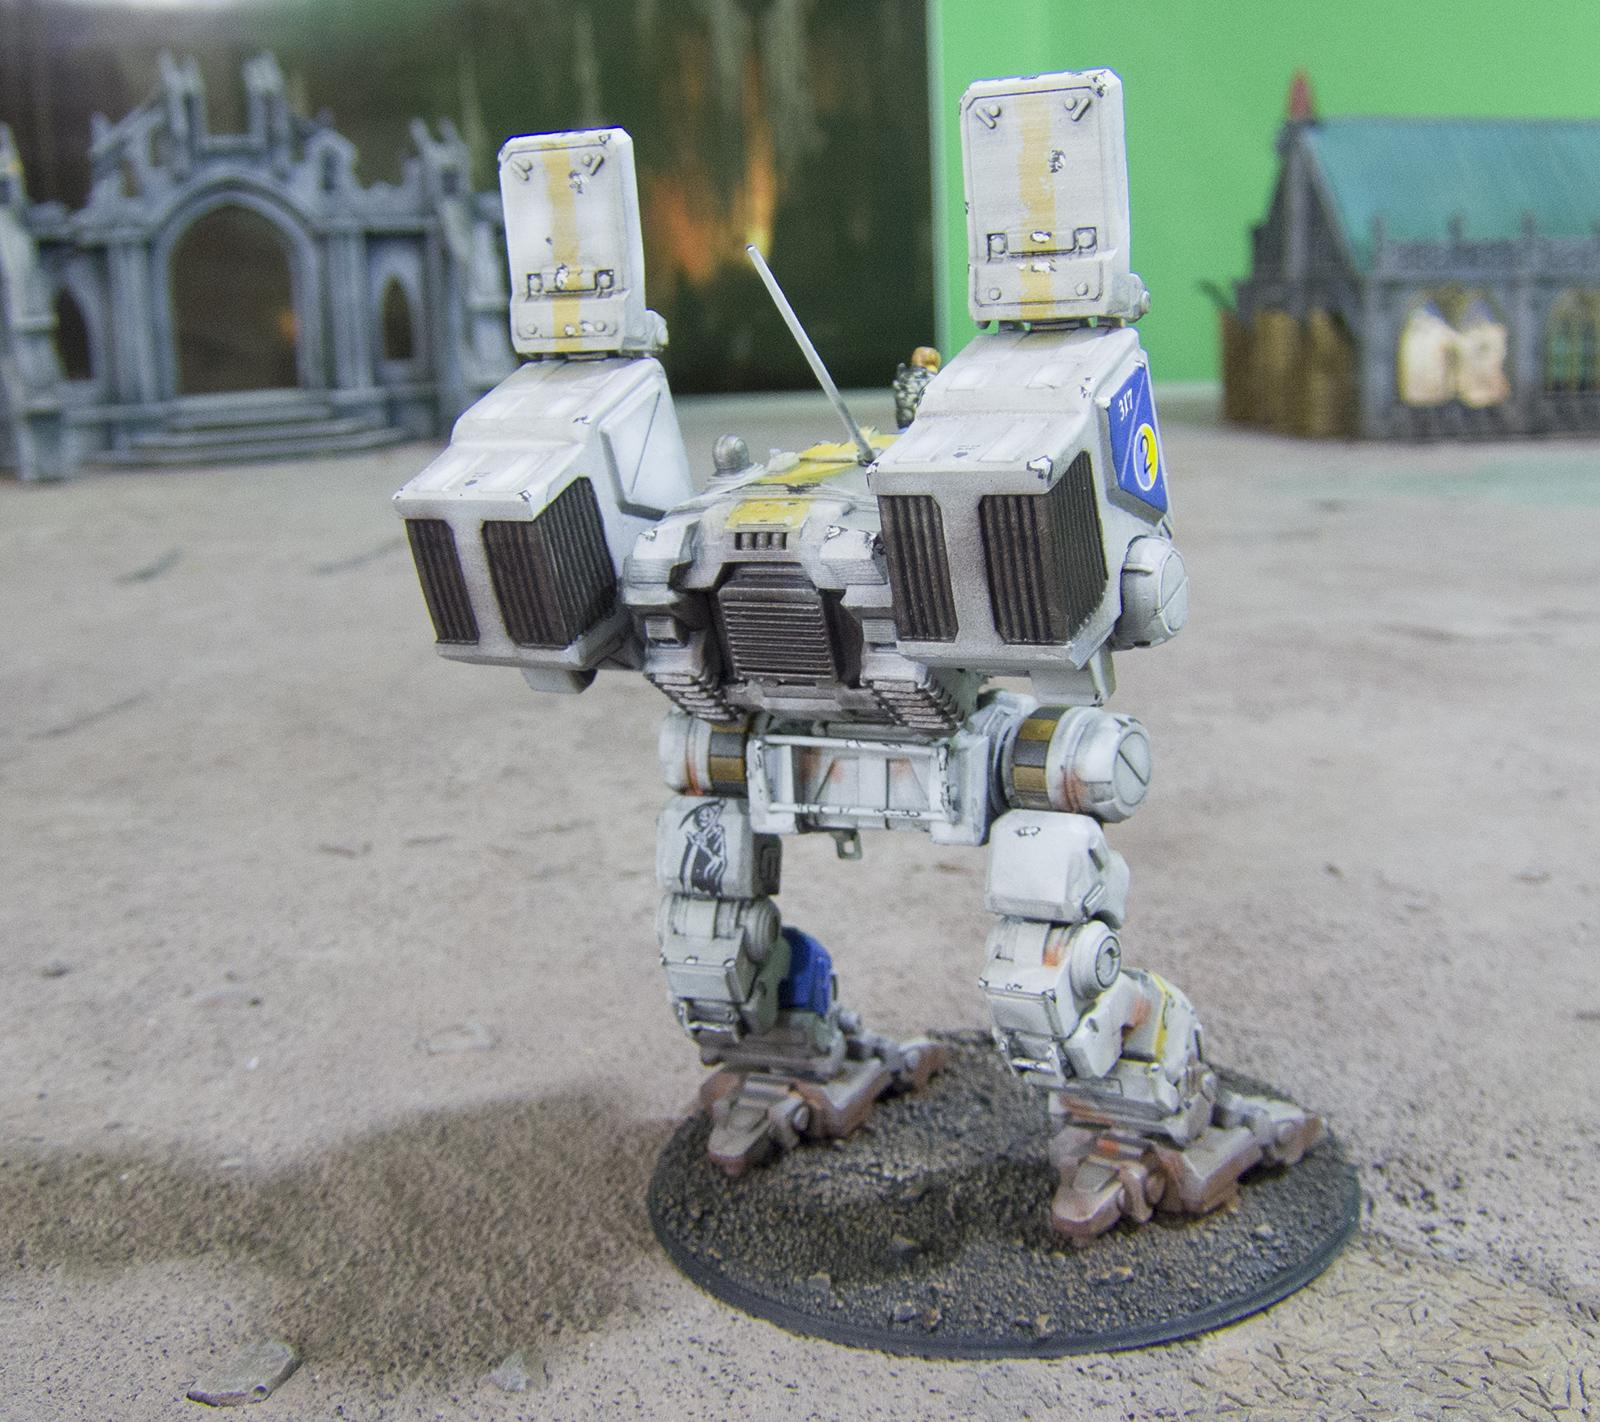 3d Printing, Anycubic Photon, Battle Tech, Battletech, Catapult, Mechwarrior, Mwo, Resin